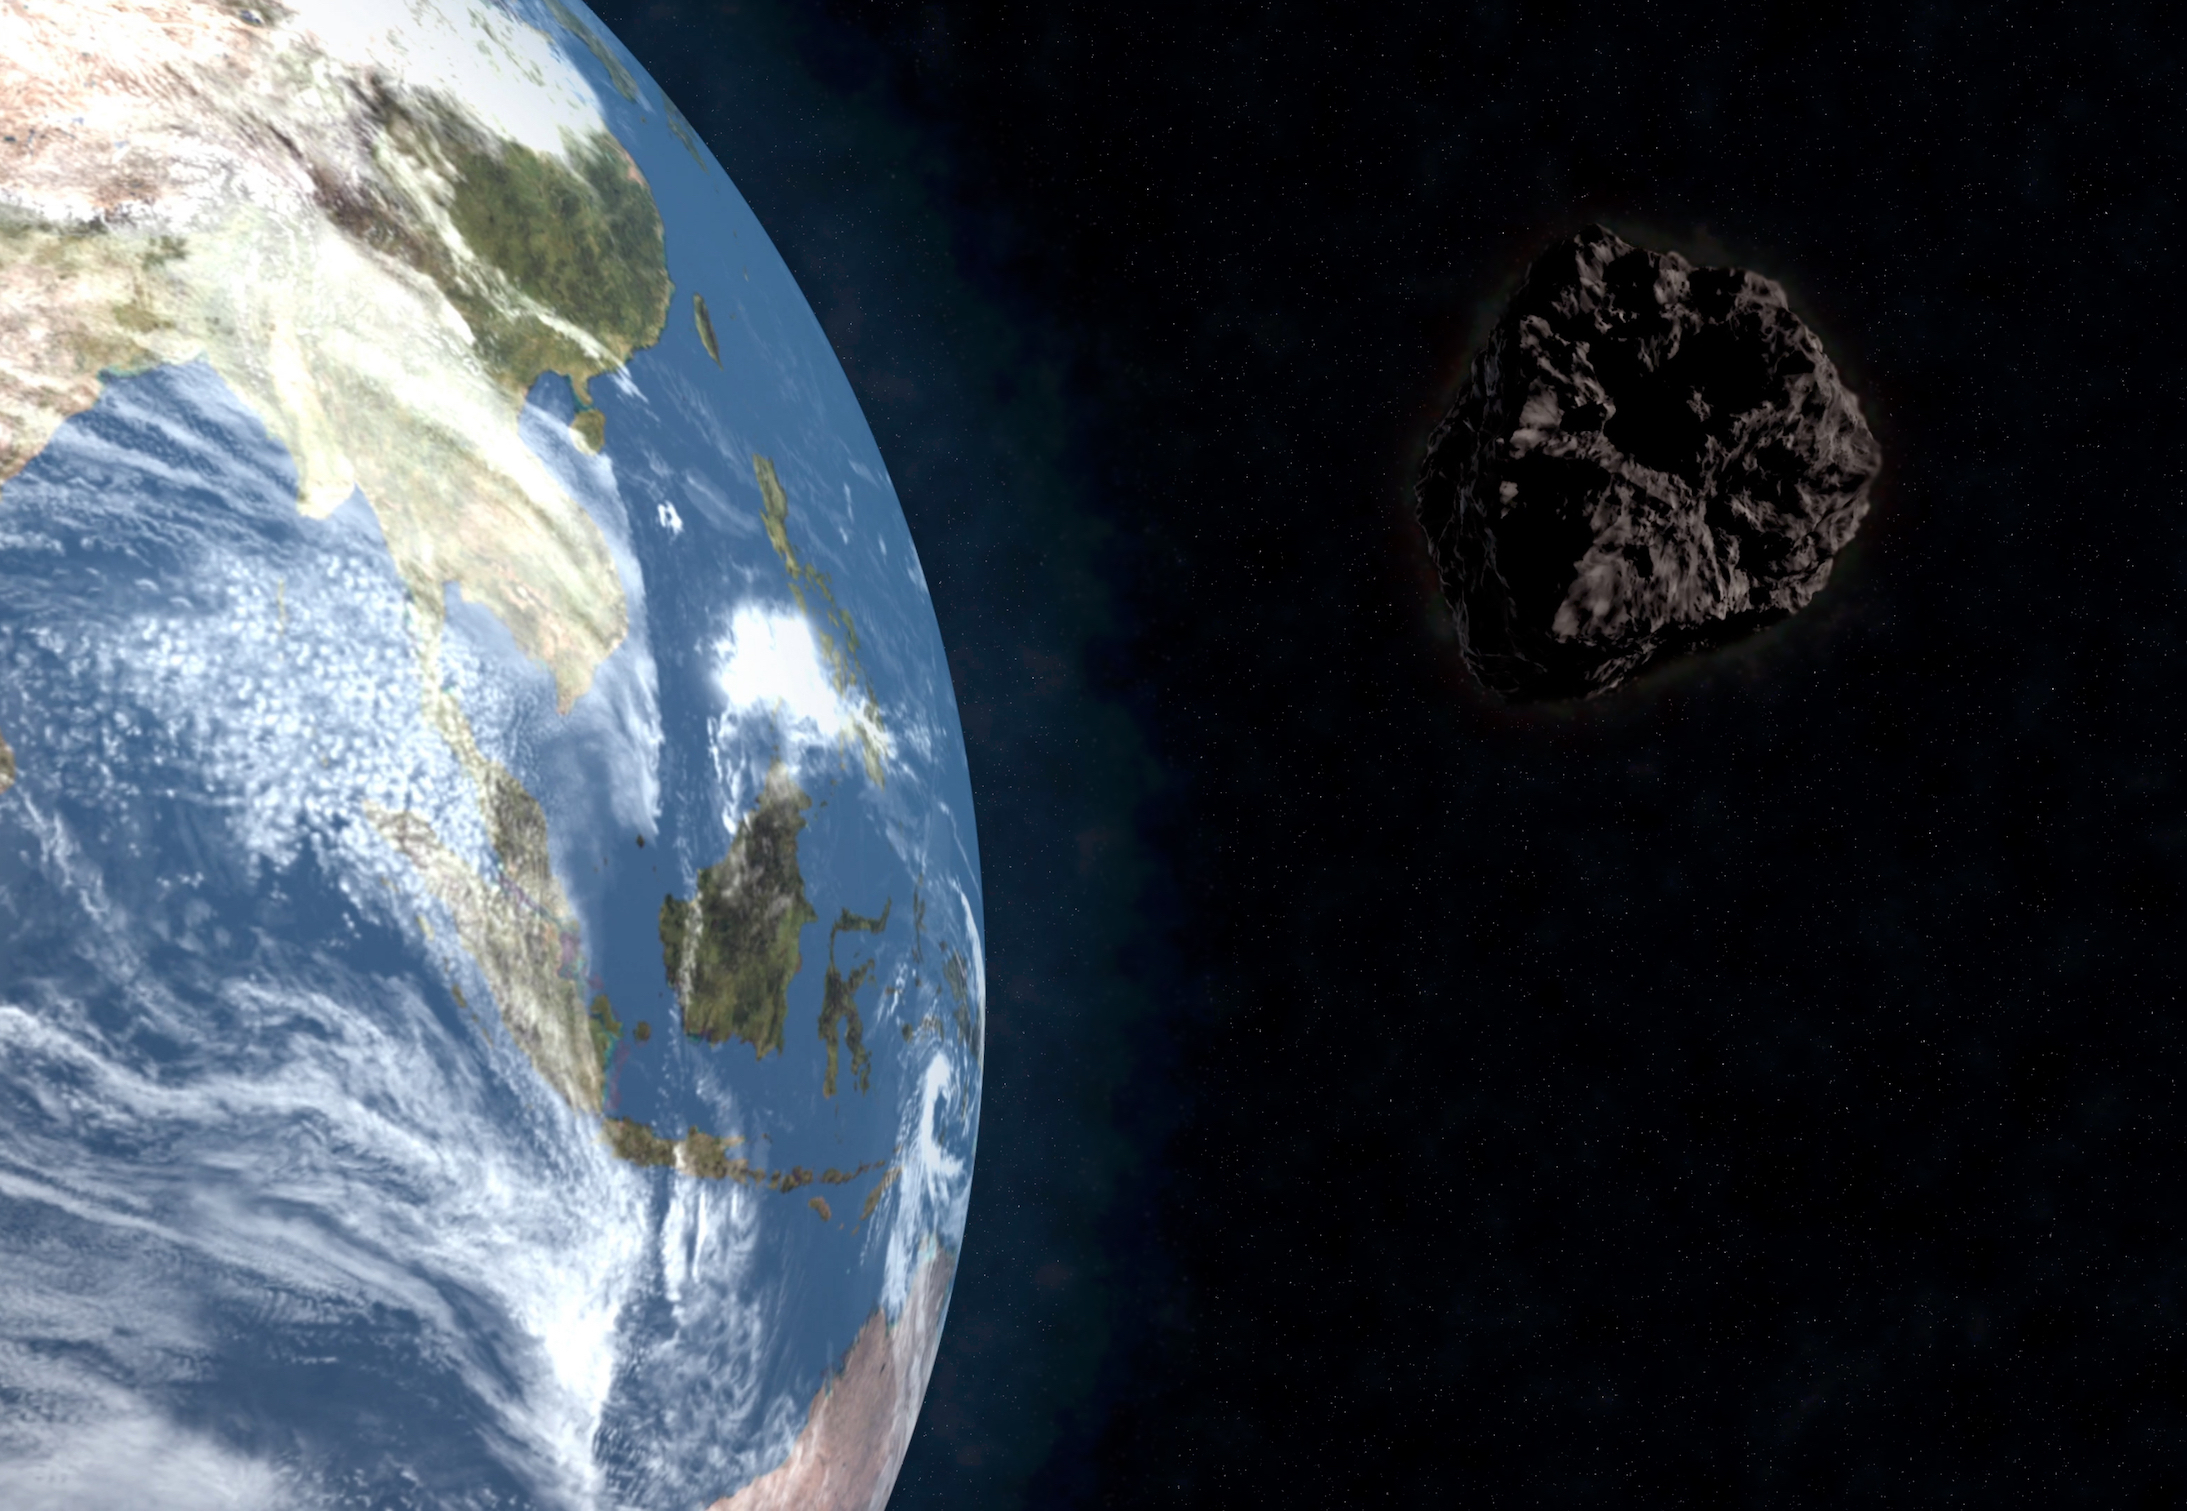 A potentially hazardous asteroid blasted past the Earth today, traveling at a speed of 21,500 miles per hour.